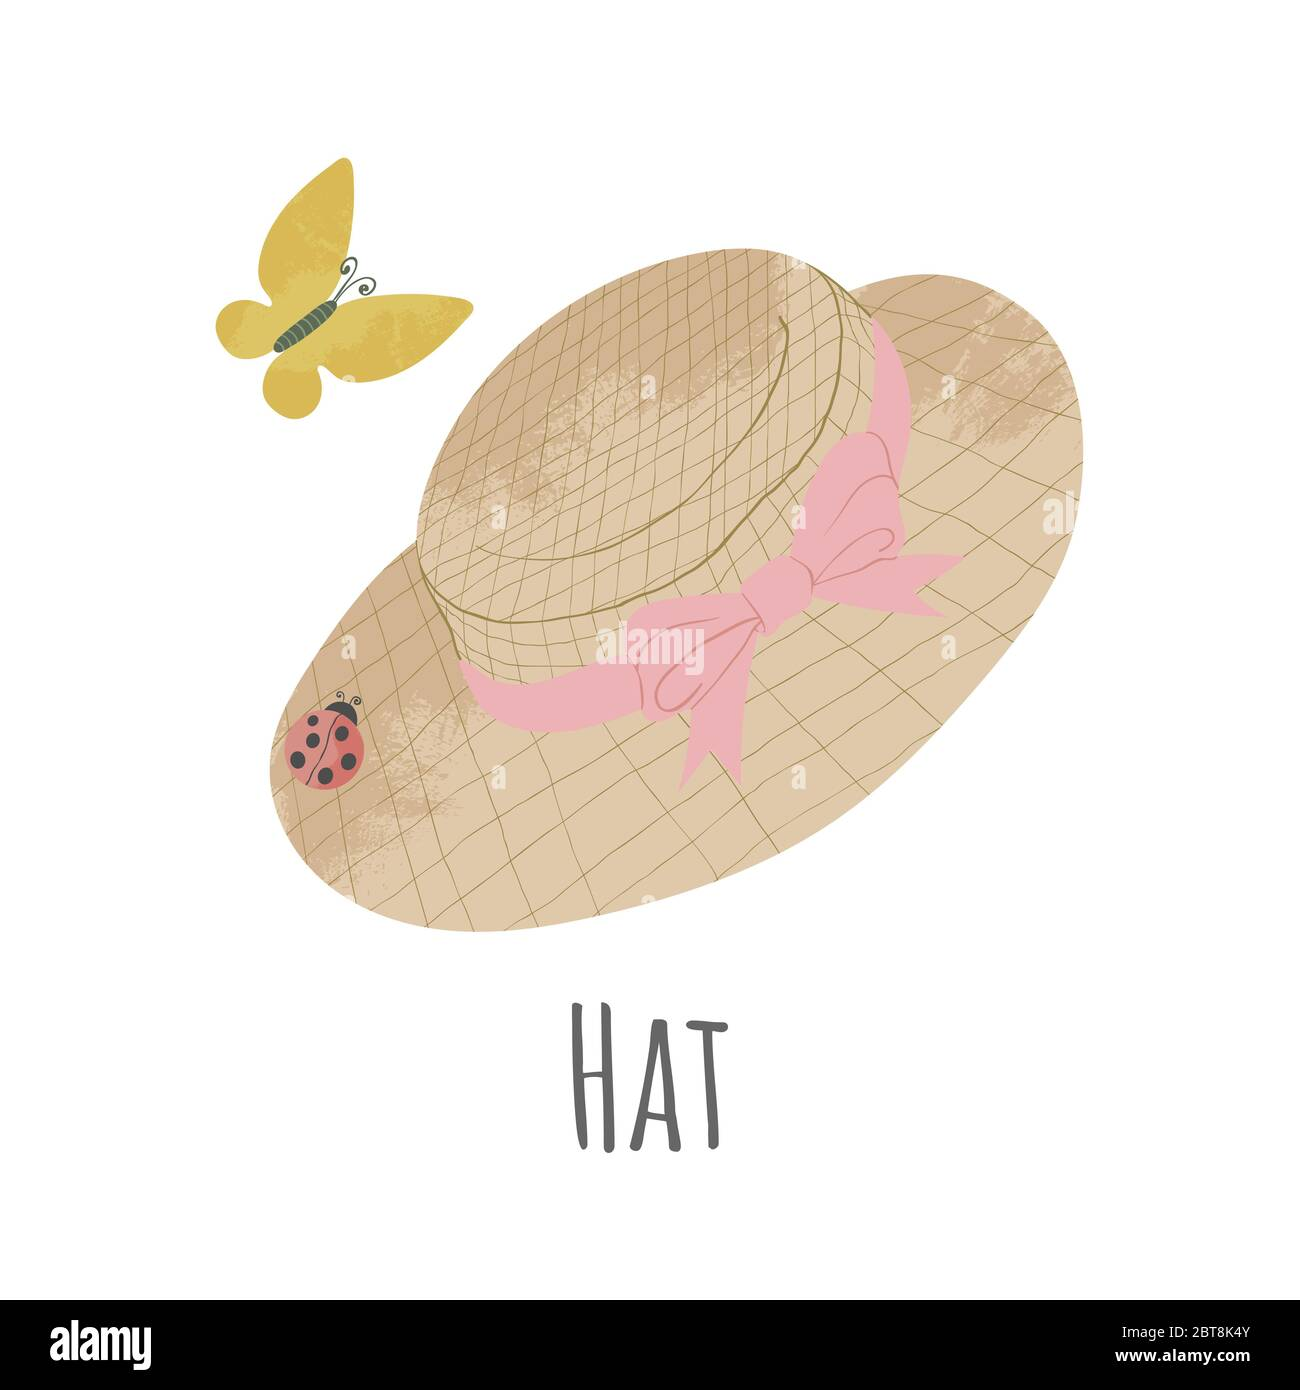 Vector hand drawn icon of straw hat with pink ribbon. Cartoon illustration in flat style. Gardening hat on white background Stock Vector